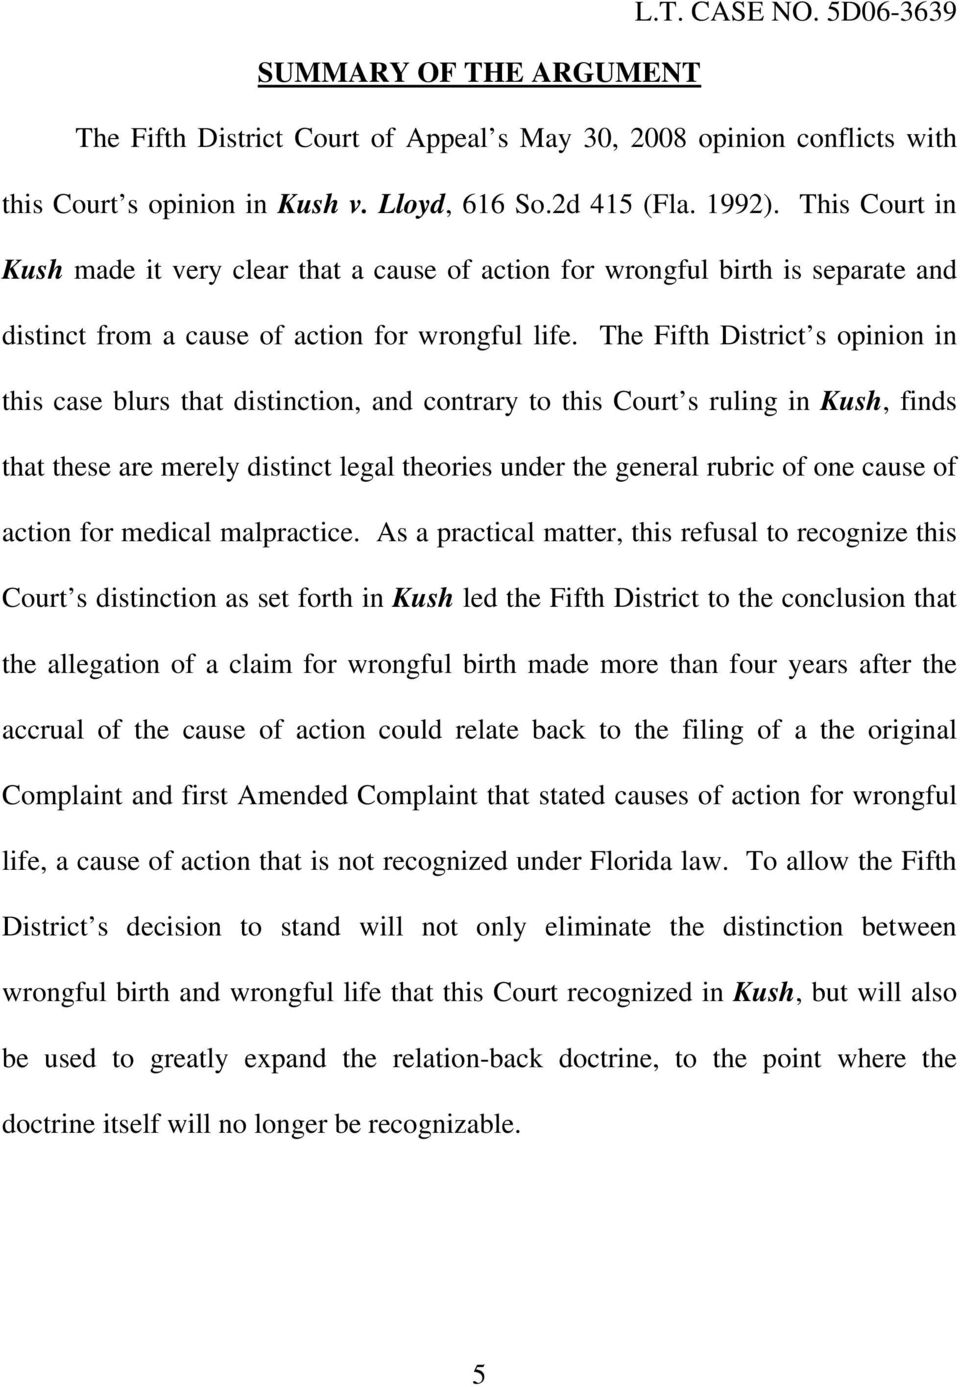 The Fifth District s opinion in this case blurs that distinction, and contrary to this Court s ruling in Kush, finds that these are merely distinct legal theories under the general rubric of one